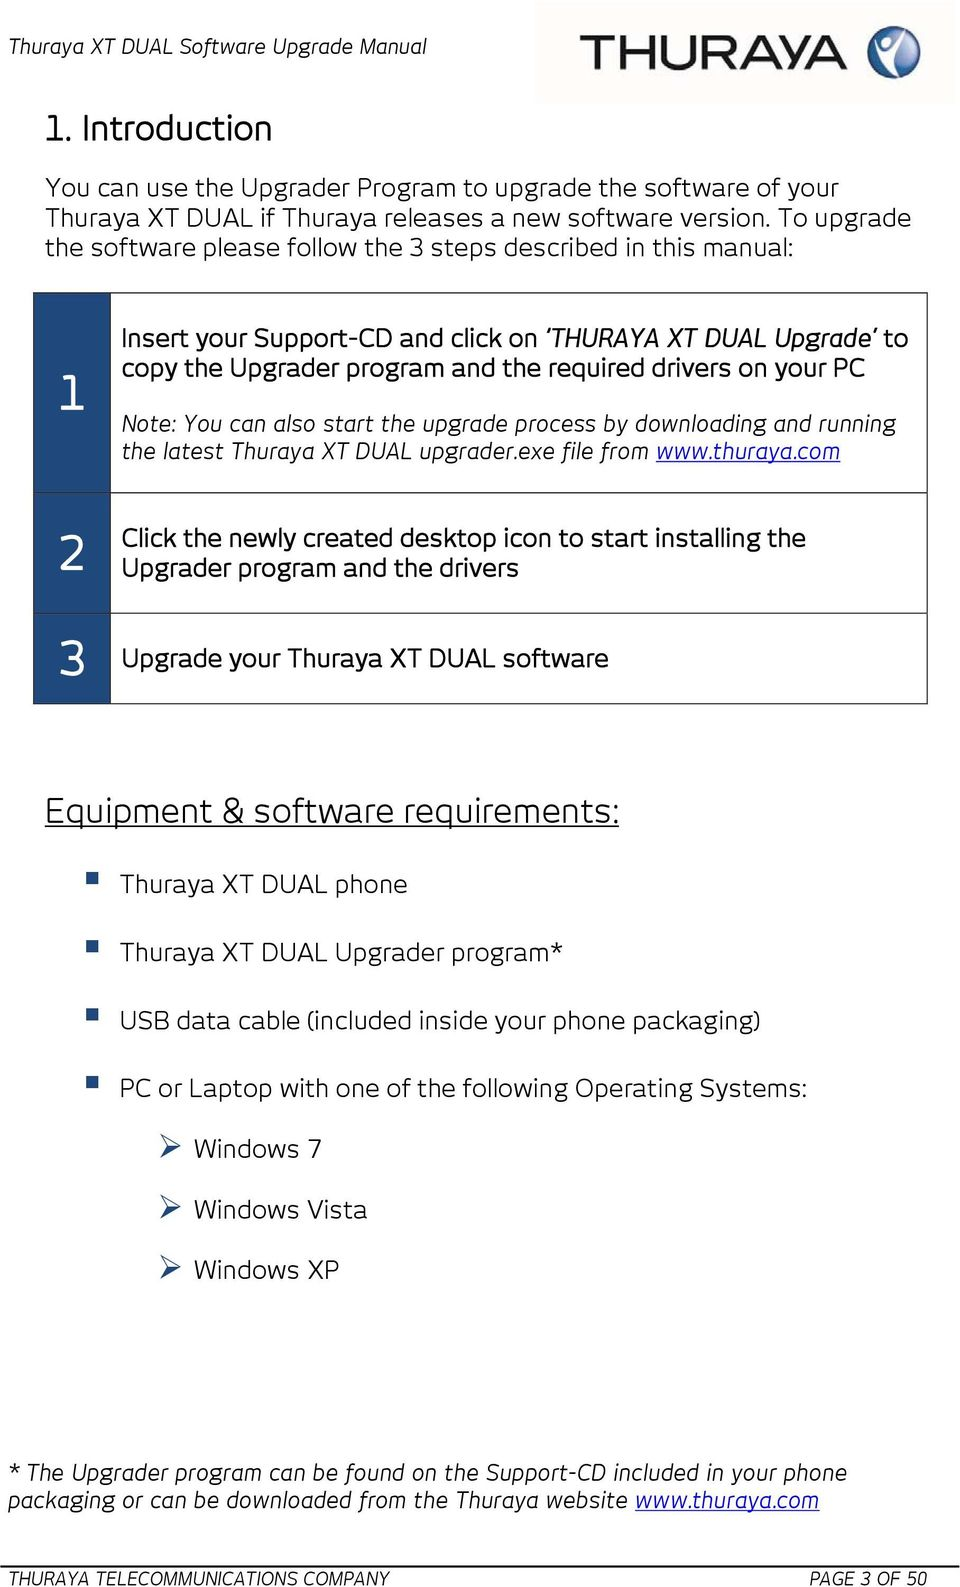 your PC Note: You can also start the upgrade process by downloading and running the latest Thuraya XT DUAL upgrader.exe file from www.thuraya.